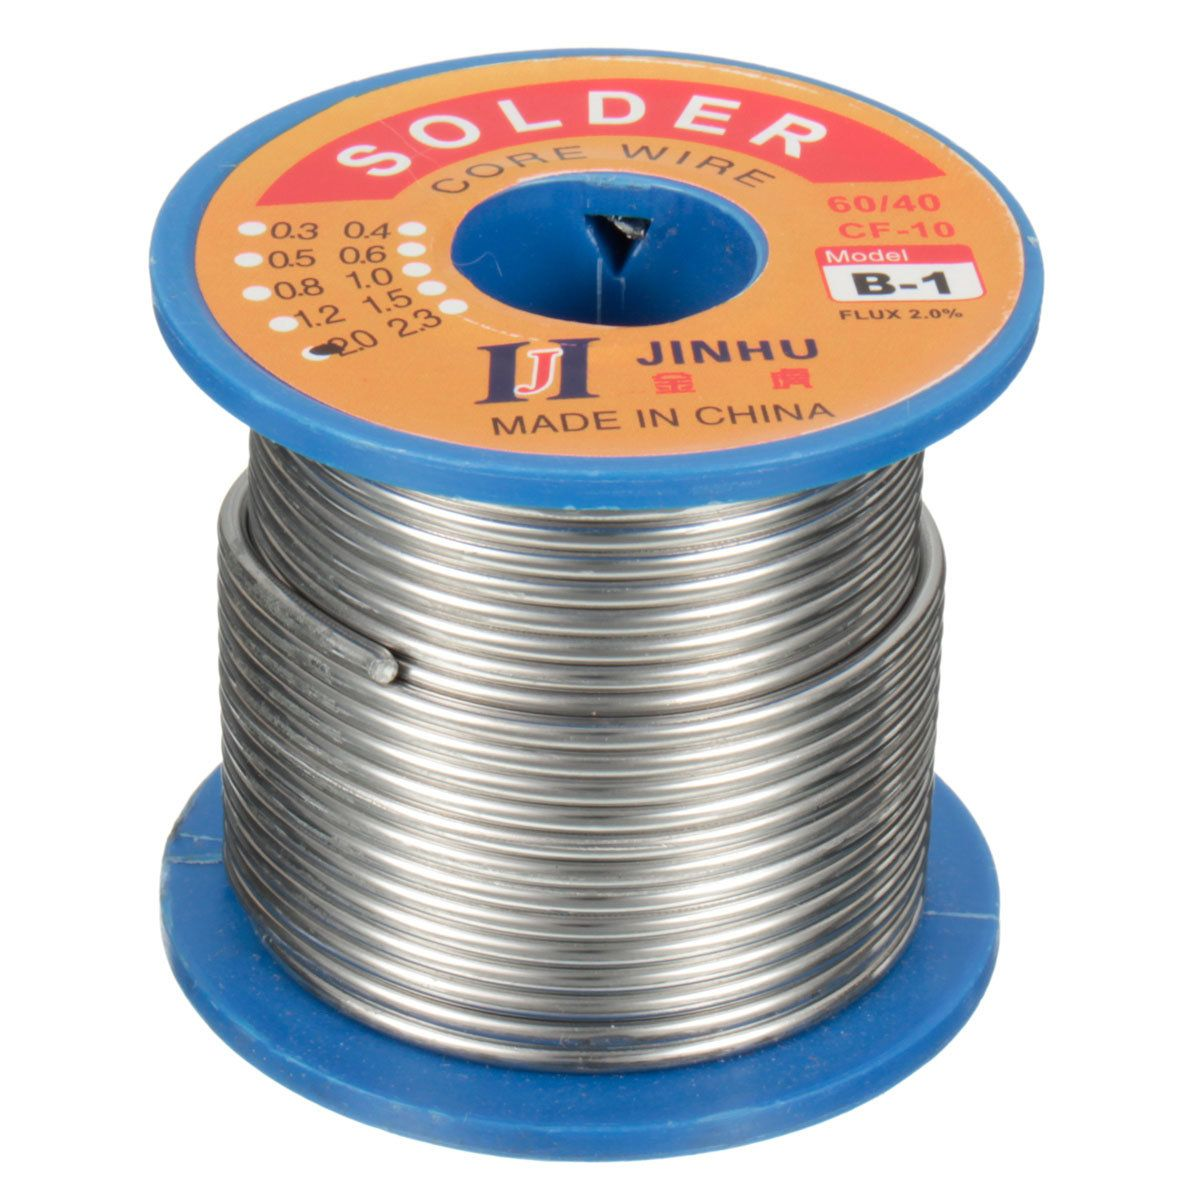 500g 2mm 60 40 Flux 2 0 Solder Wire Solder Wire Tin Lead Flux Roll Professional Tools From Tools On Banggood Com